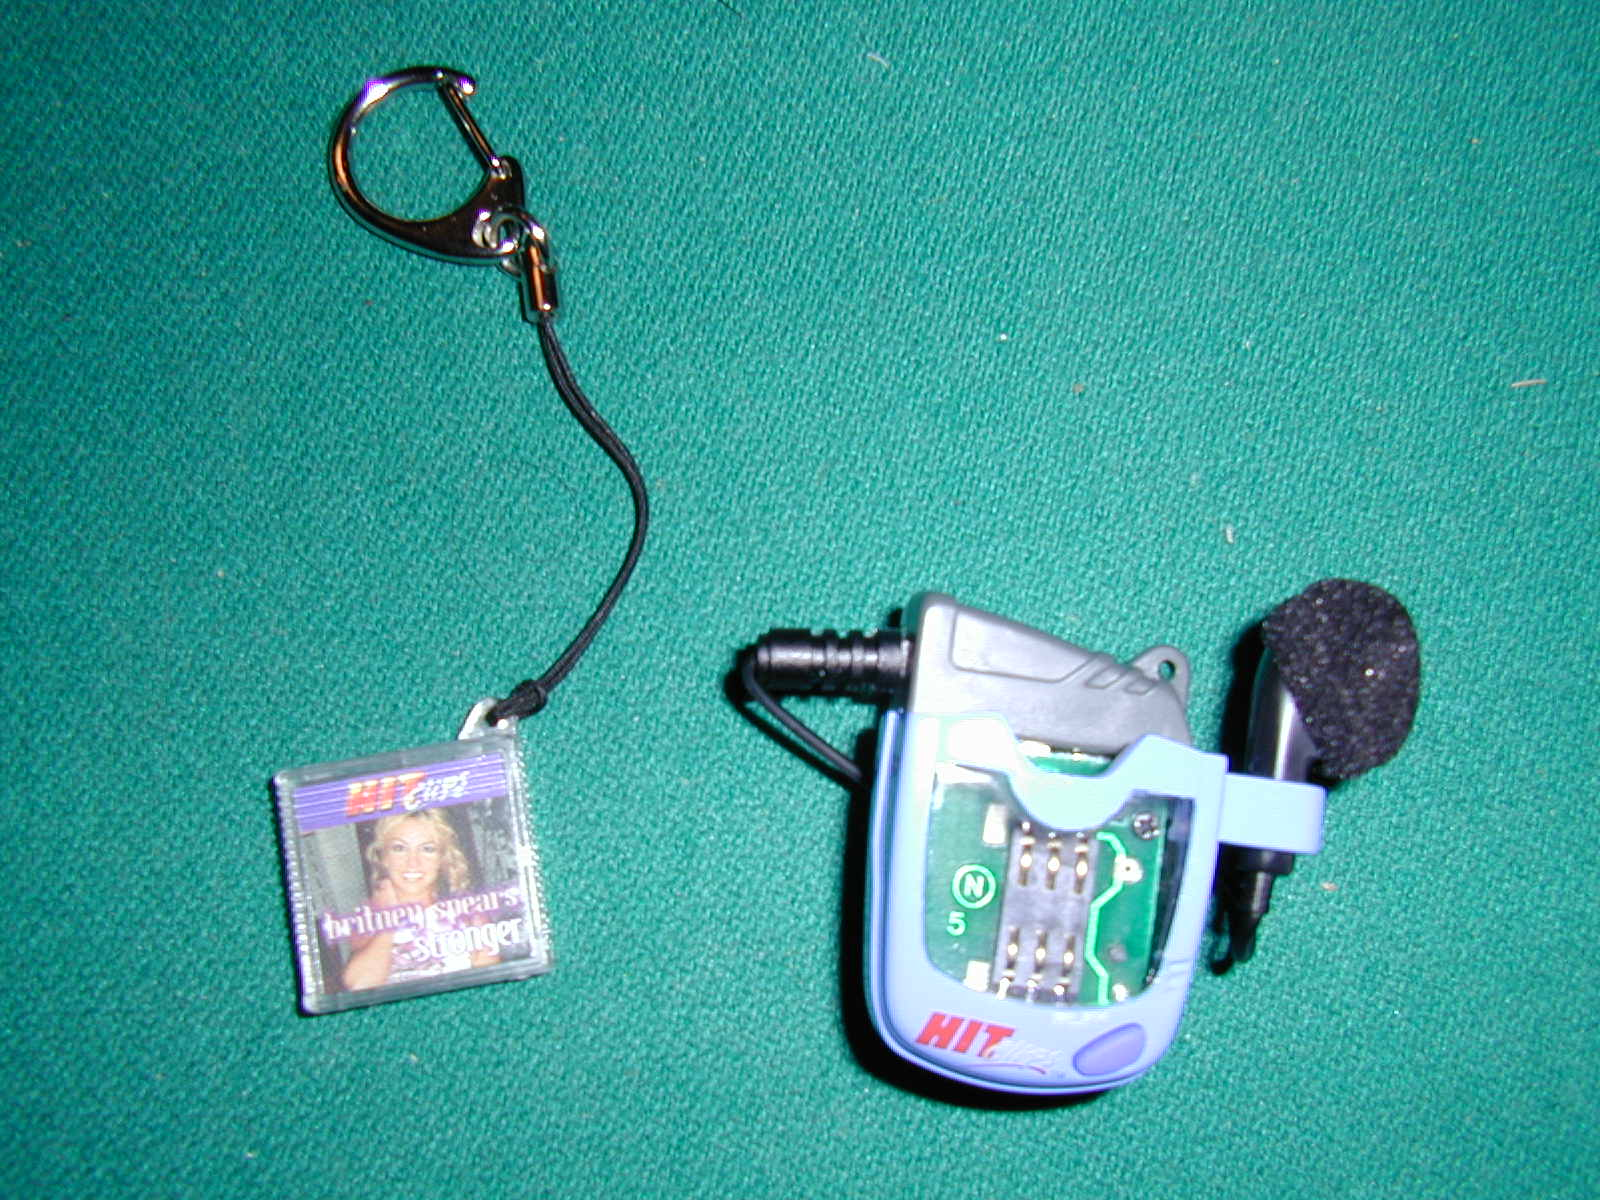 Clip Art Hitclip dscn0002 jpg closer up picture of just the player and xcartridge